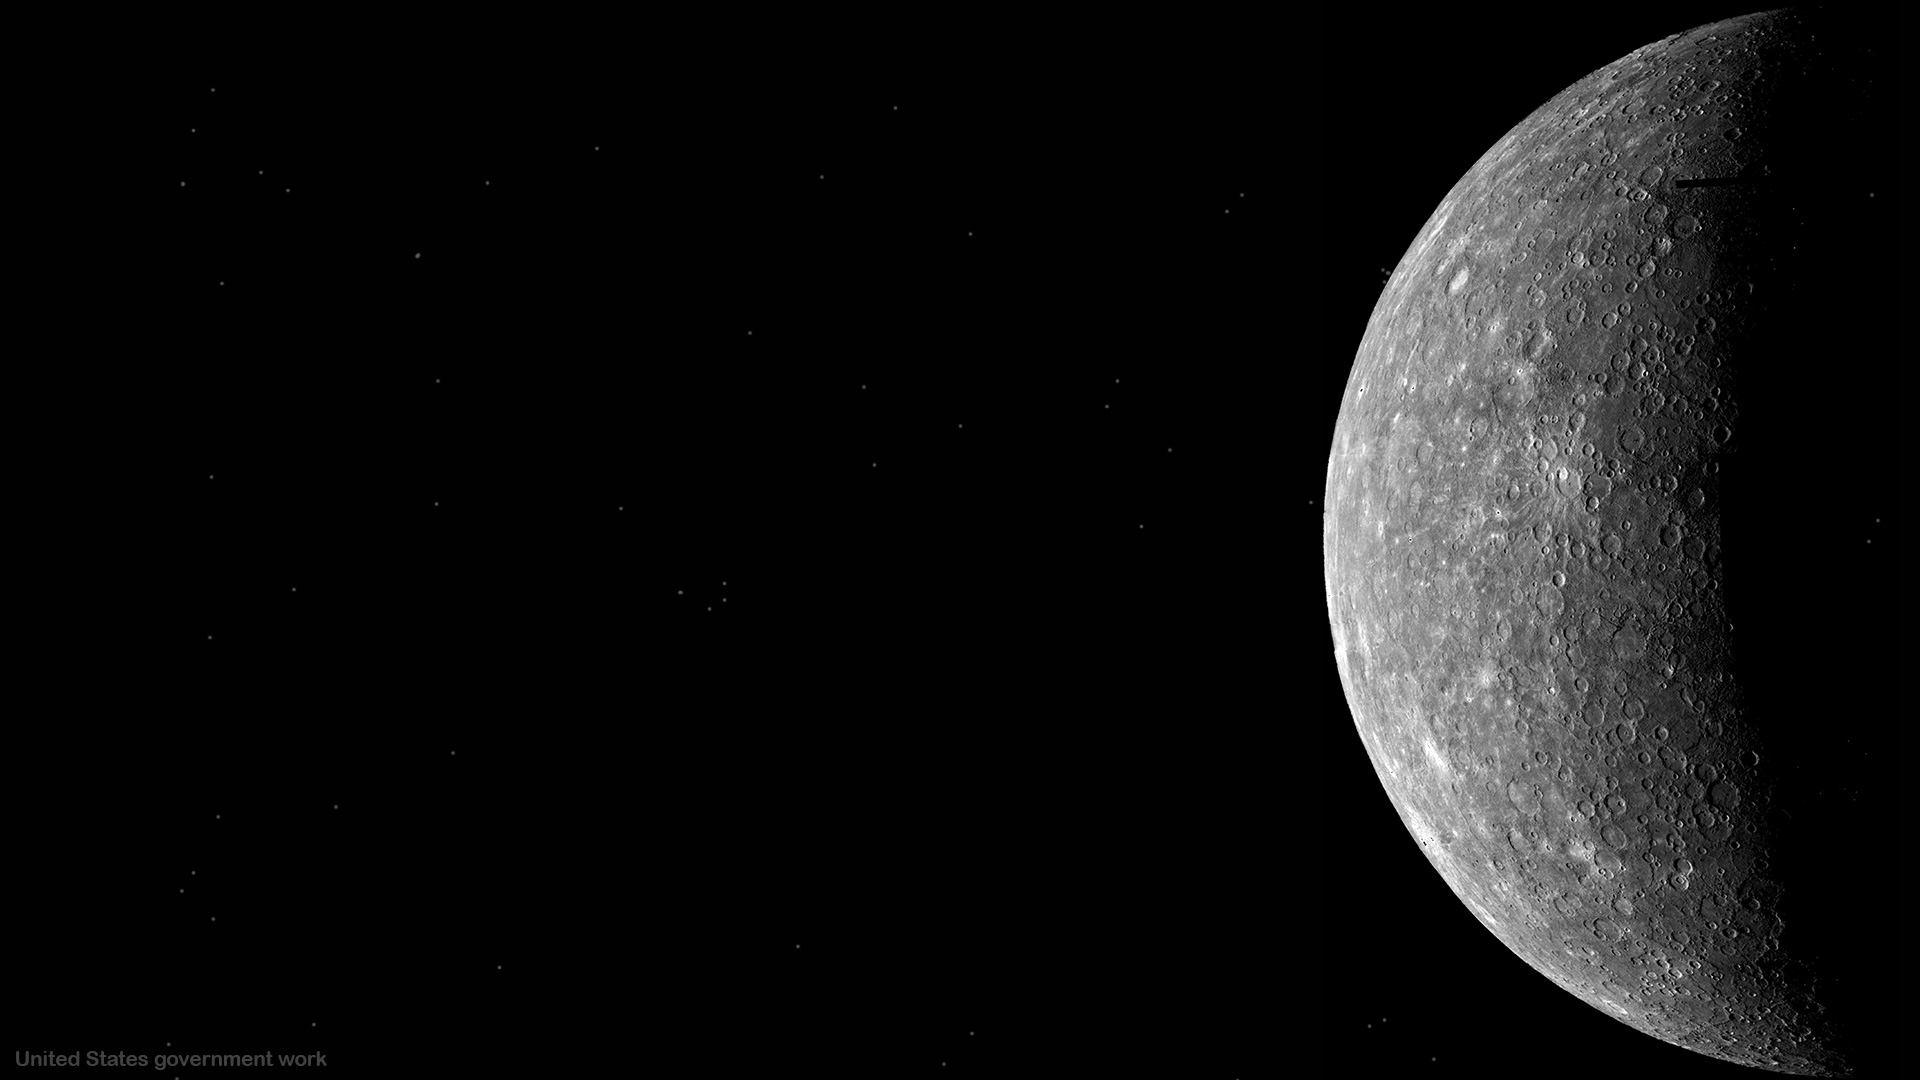 Mercury Planet with Black Background